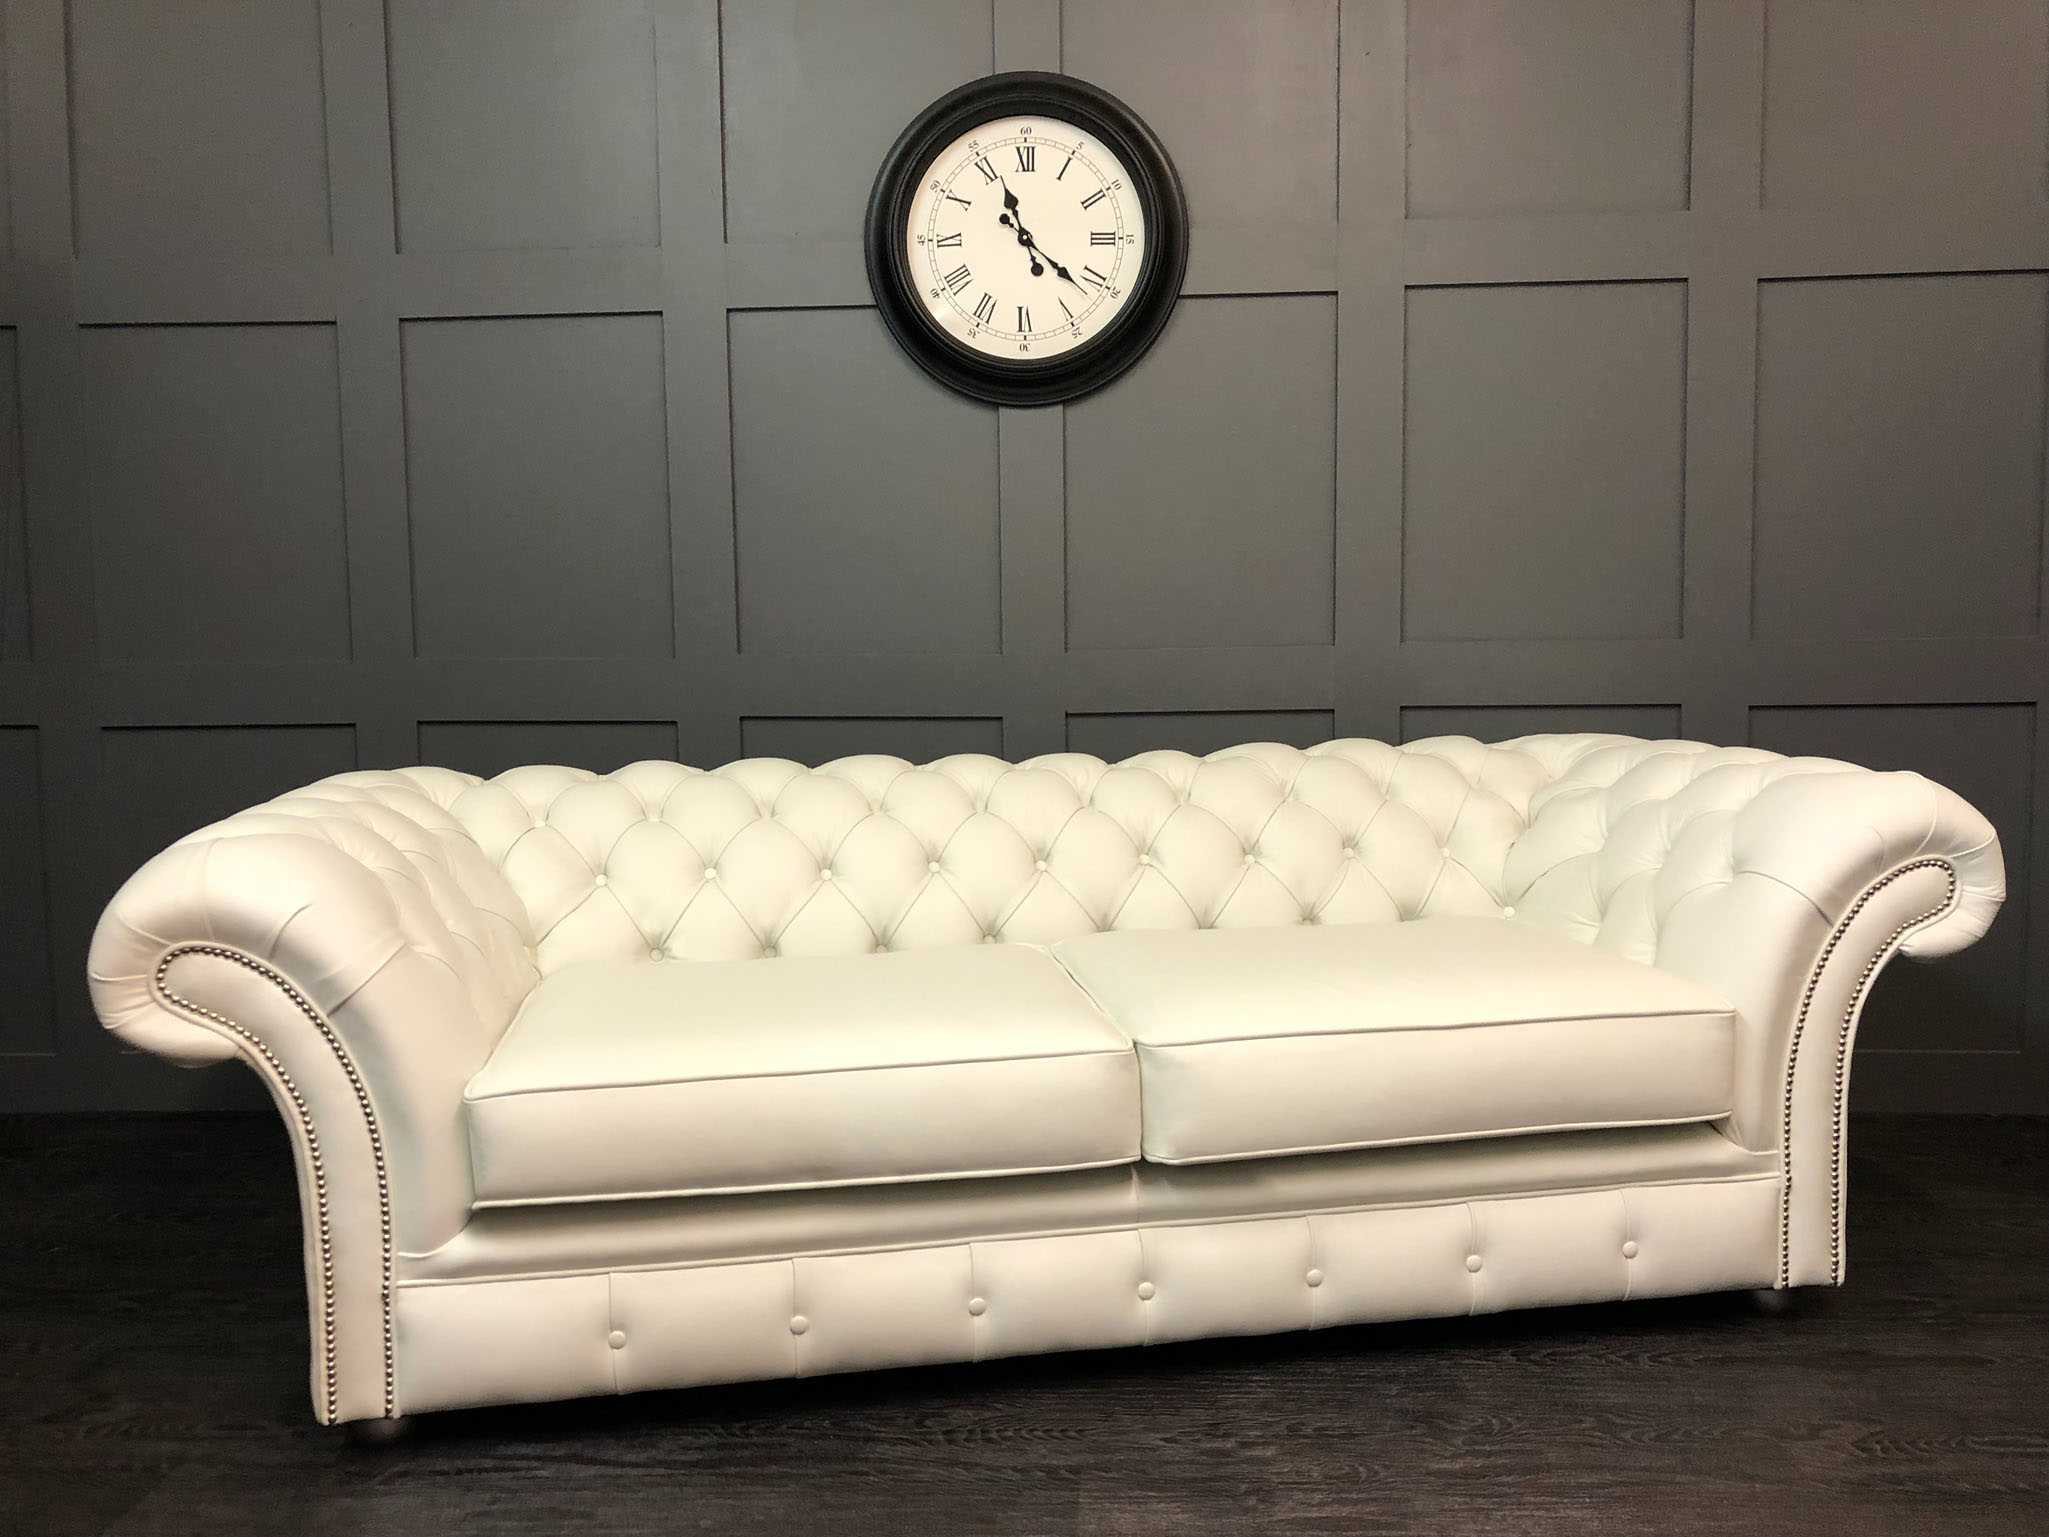 London chesterfield lena white leather